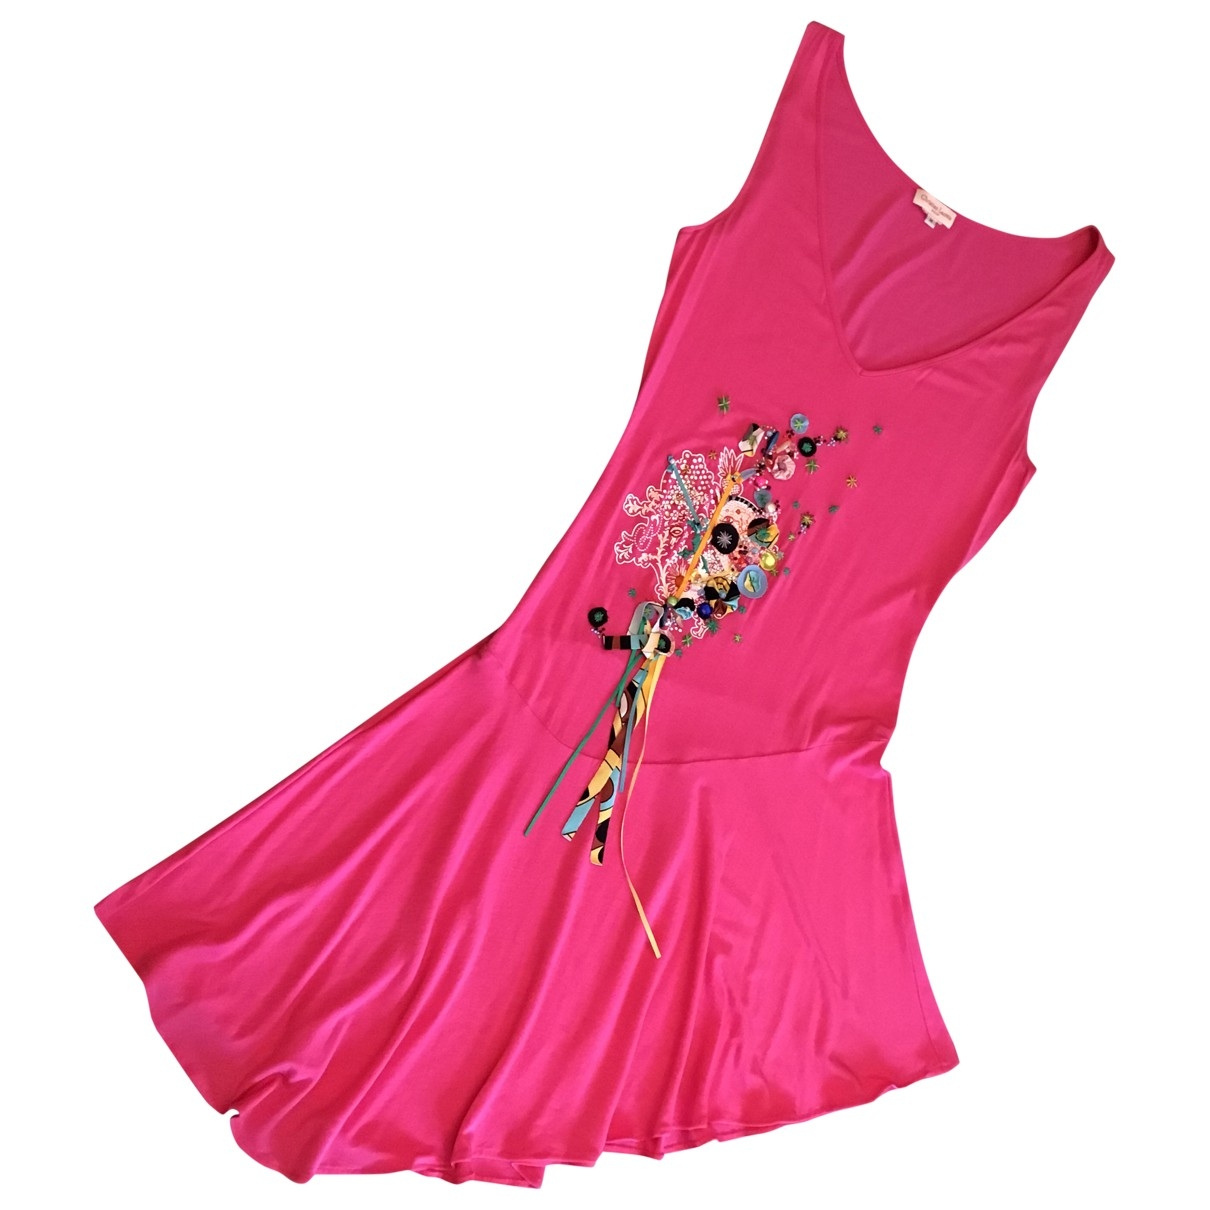 Christian Lacroix \N Pink Cotton dress for Women 38 FR